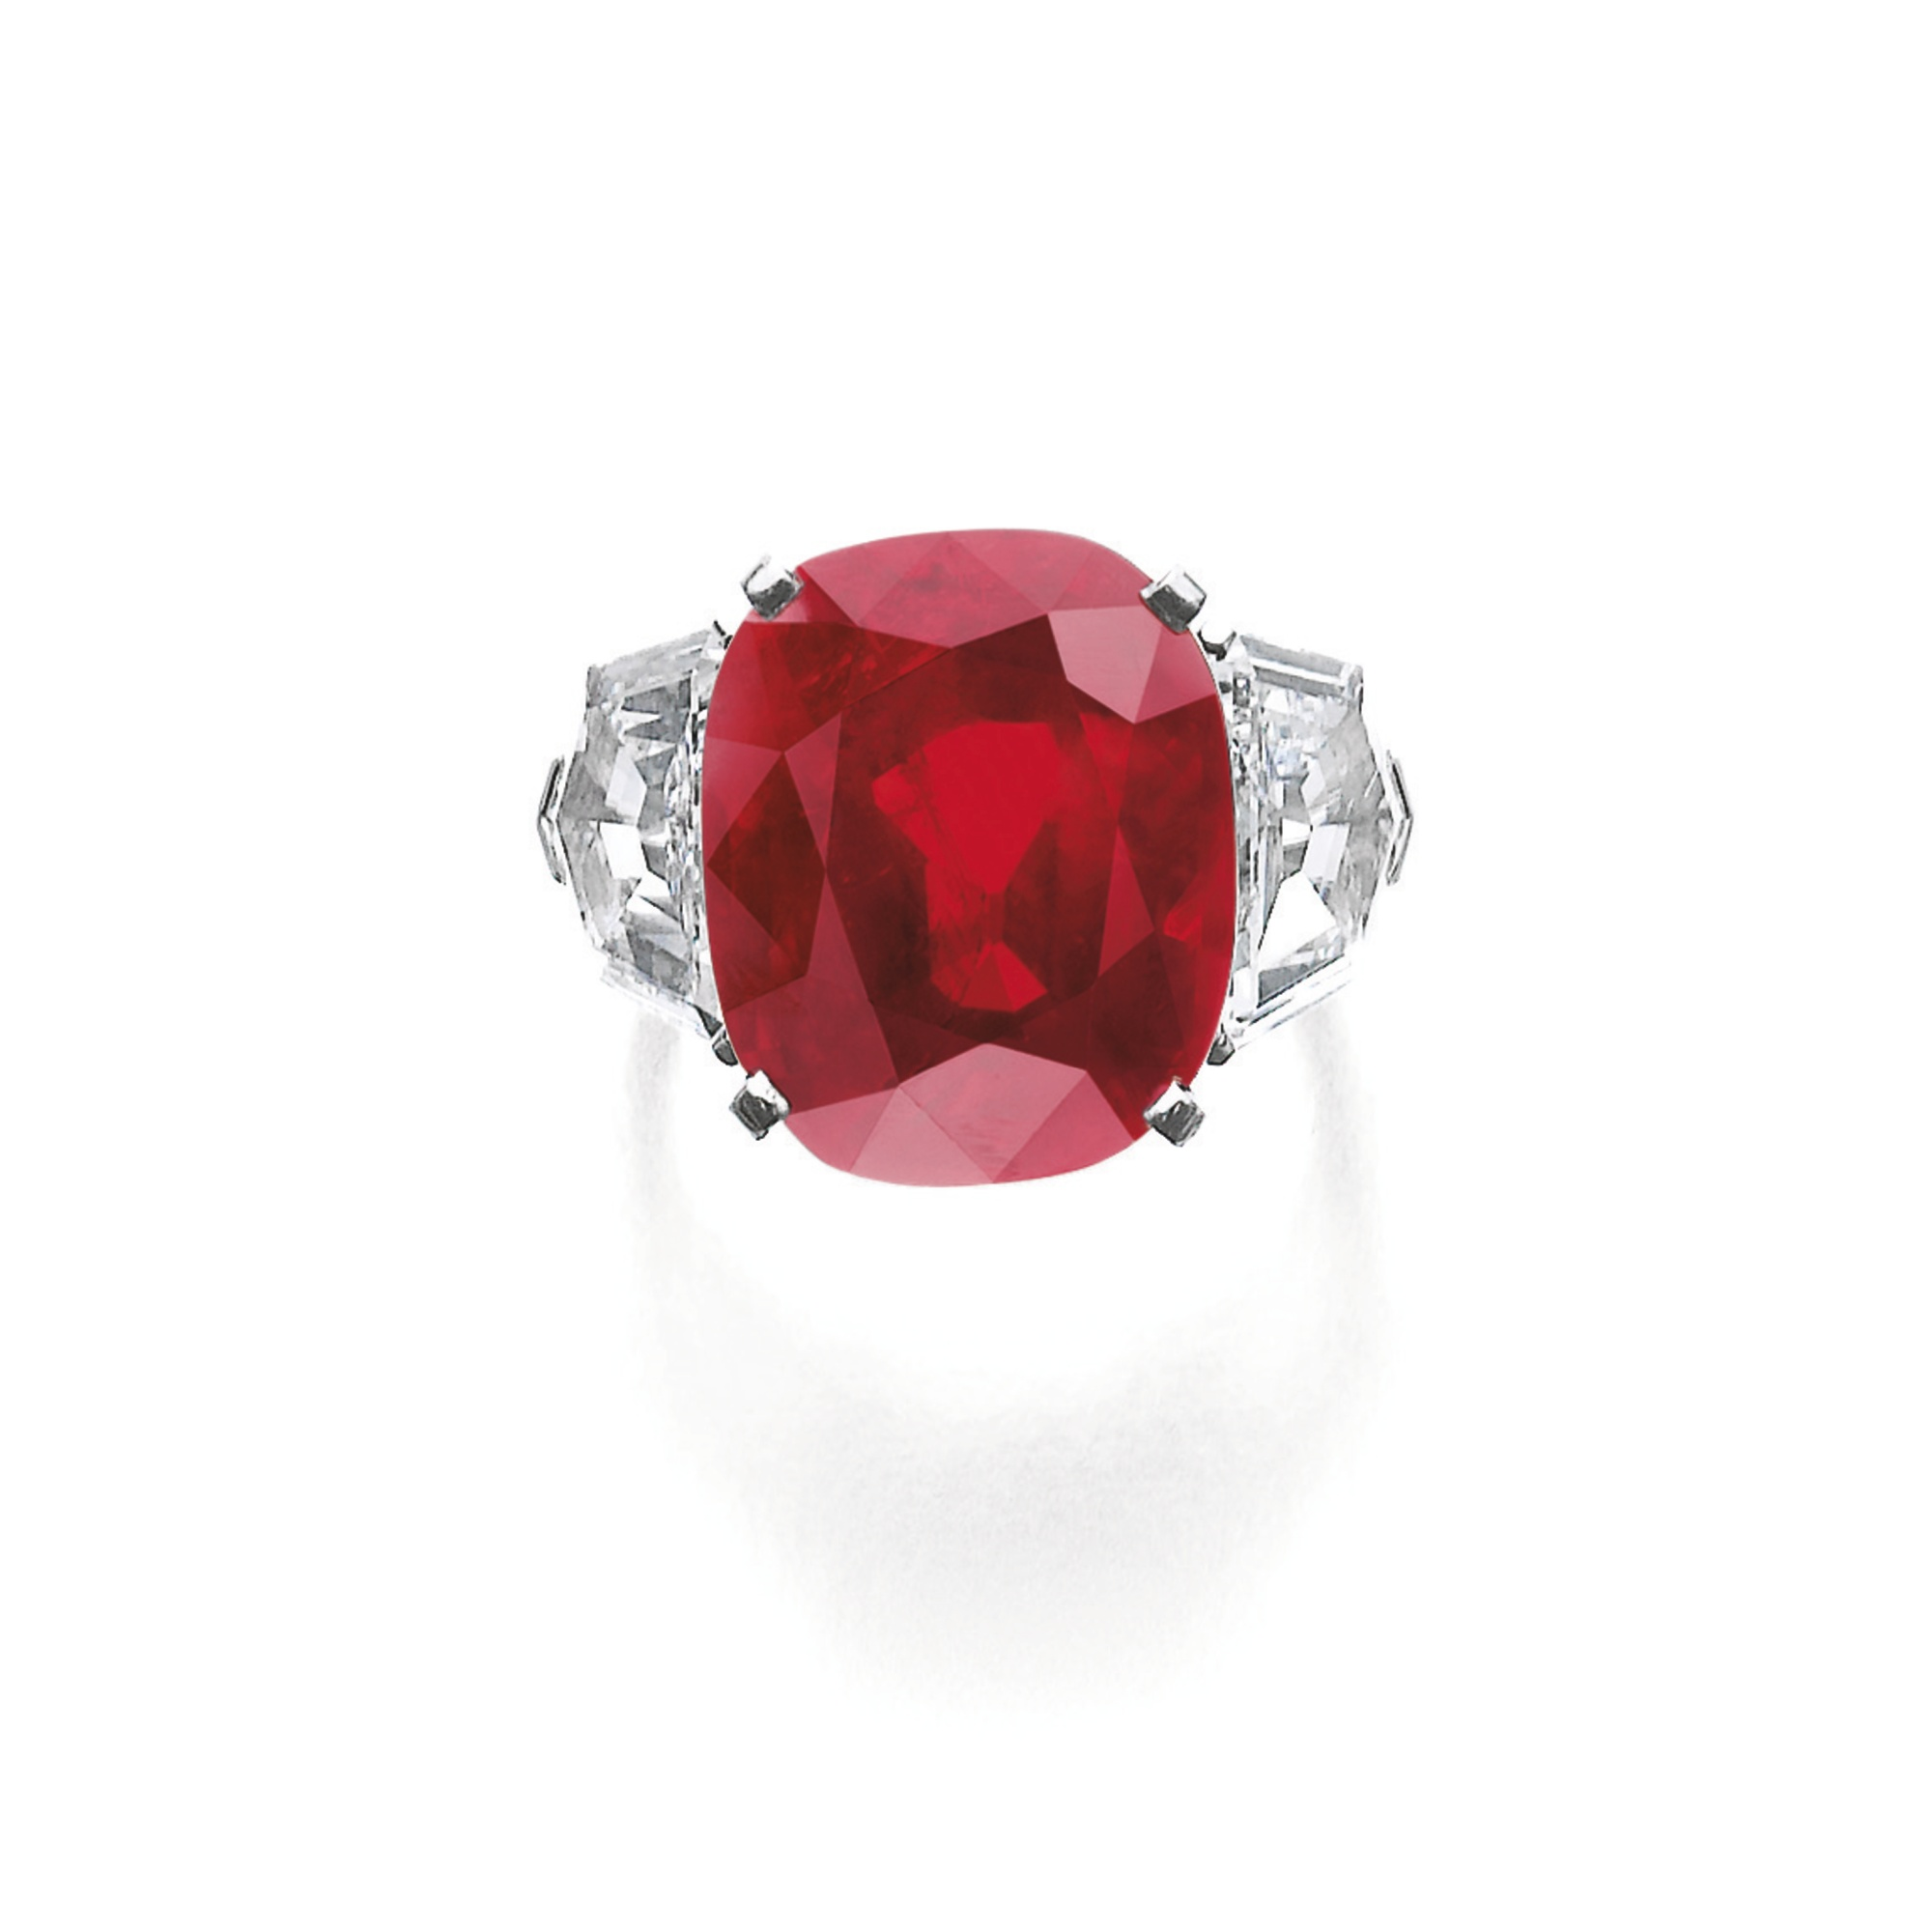 Cartier Sunrise Ruby Ring sold by Sotheby's